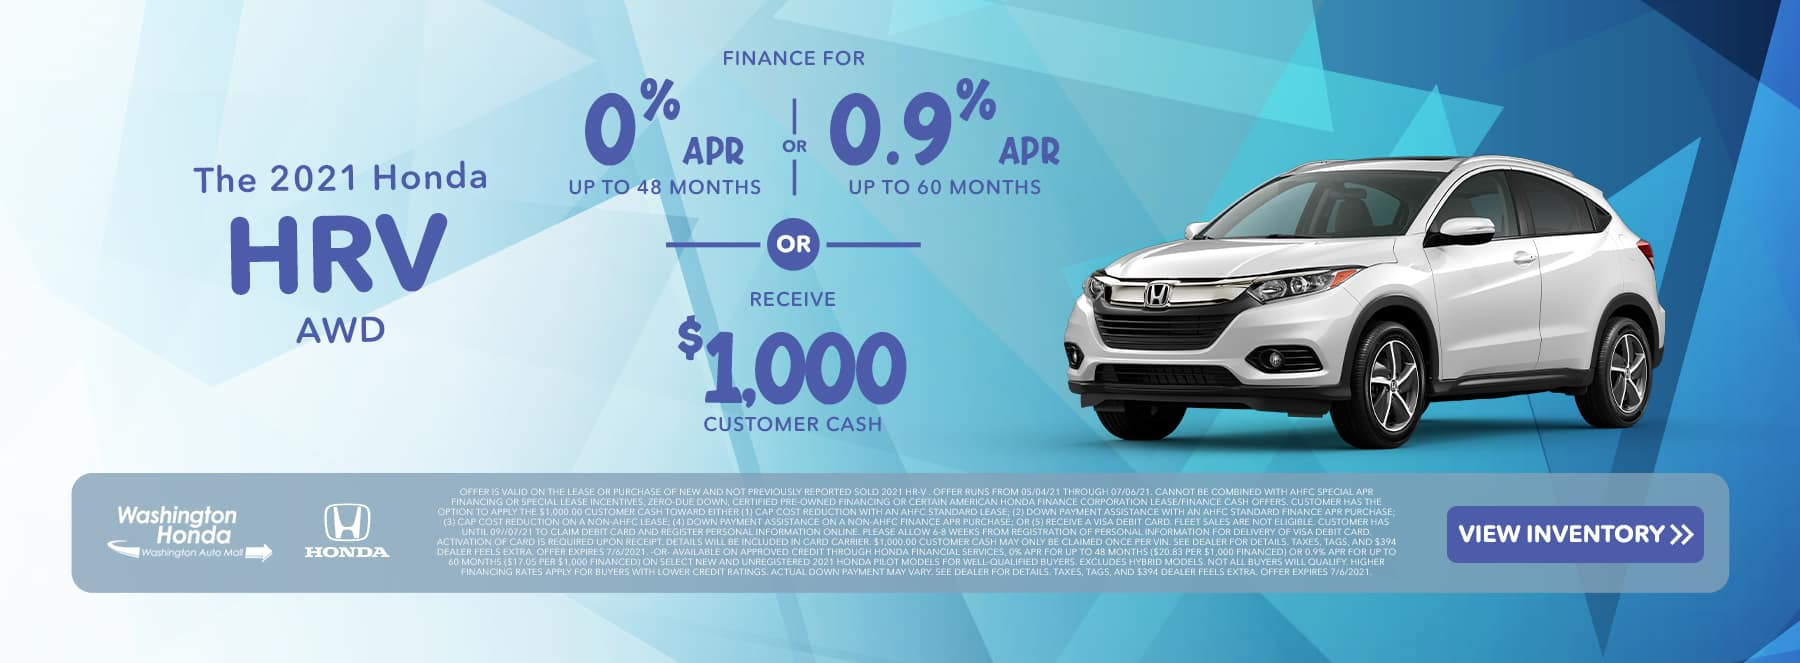 The 2021 Honda HR-V Finance for 0% APR for 48 MO OR 0.9% APR for 60 MO OR Receive $1,000 Customer Cash